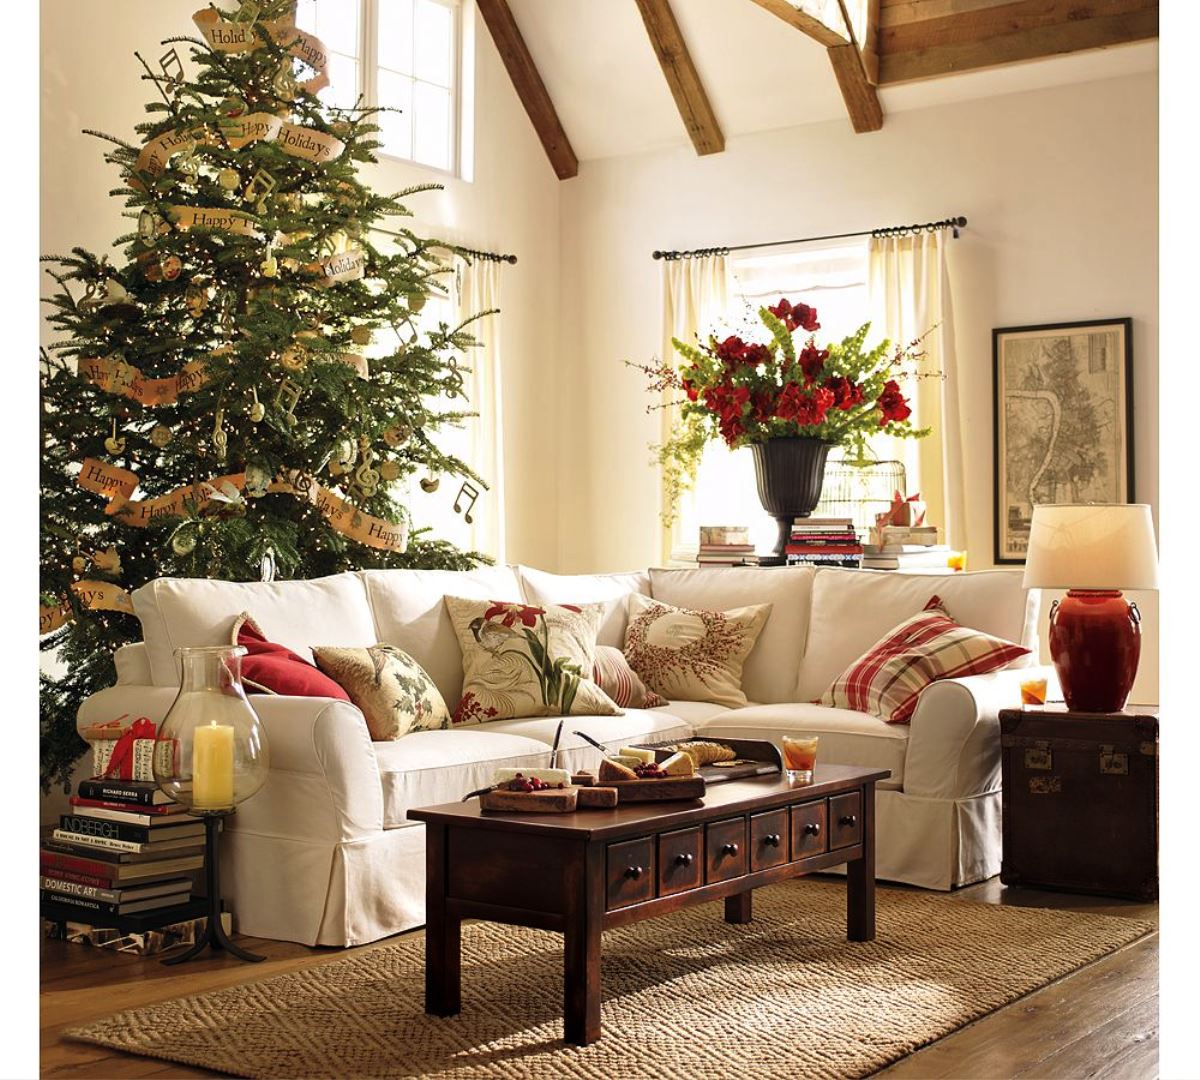 50 Stunning Christmas Decorations For Your Living Room ...